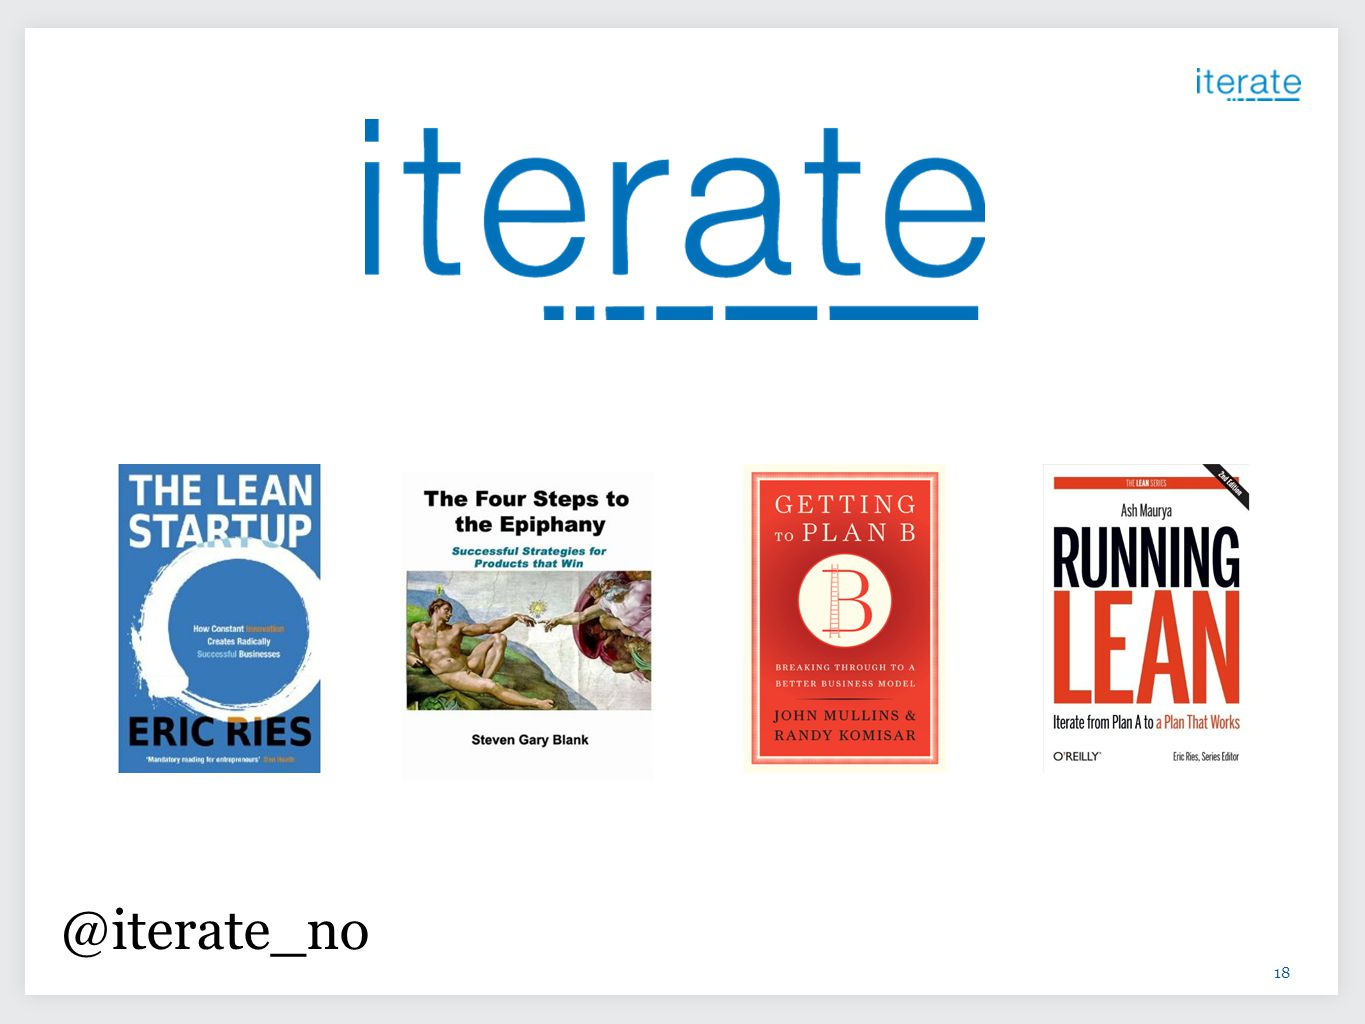 @iterate_no